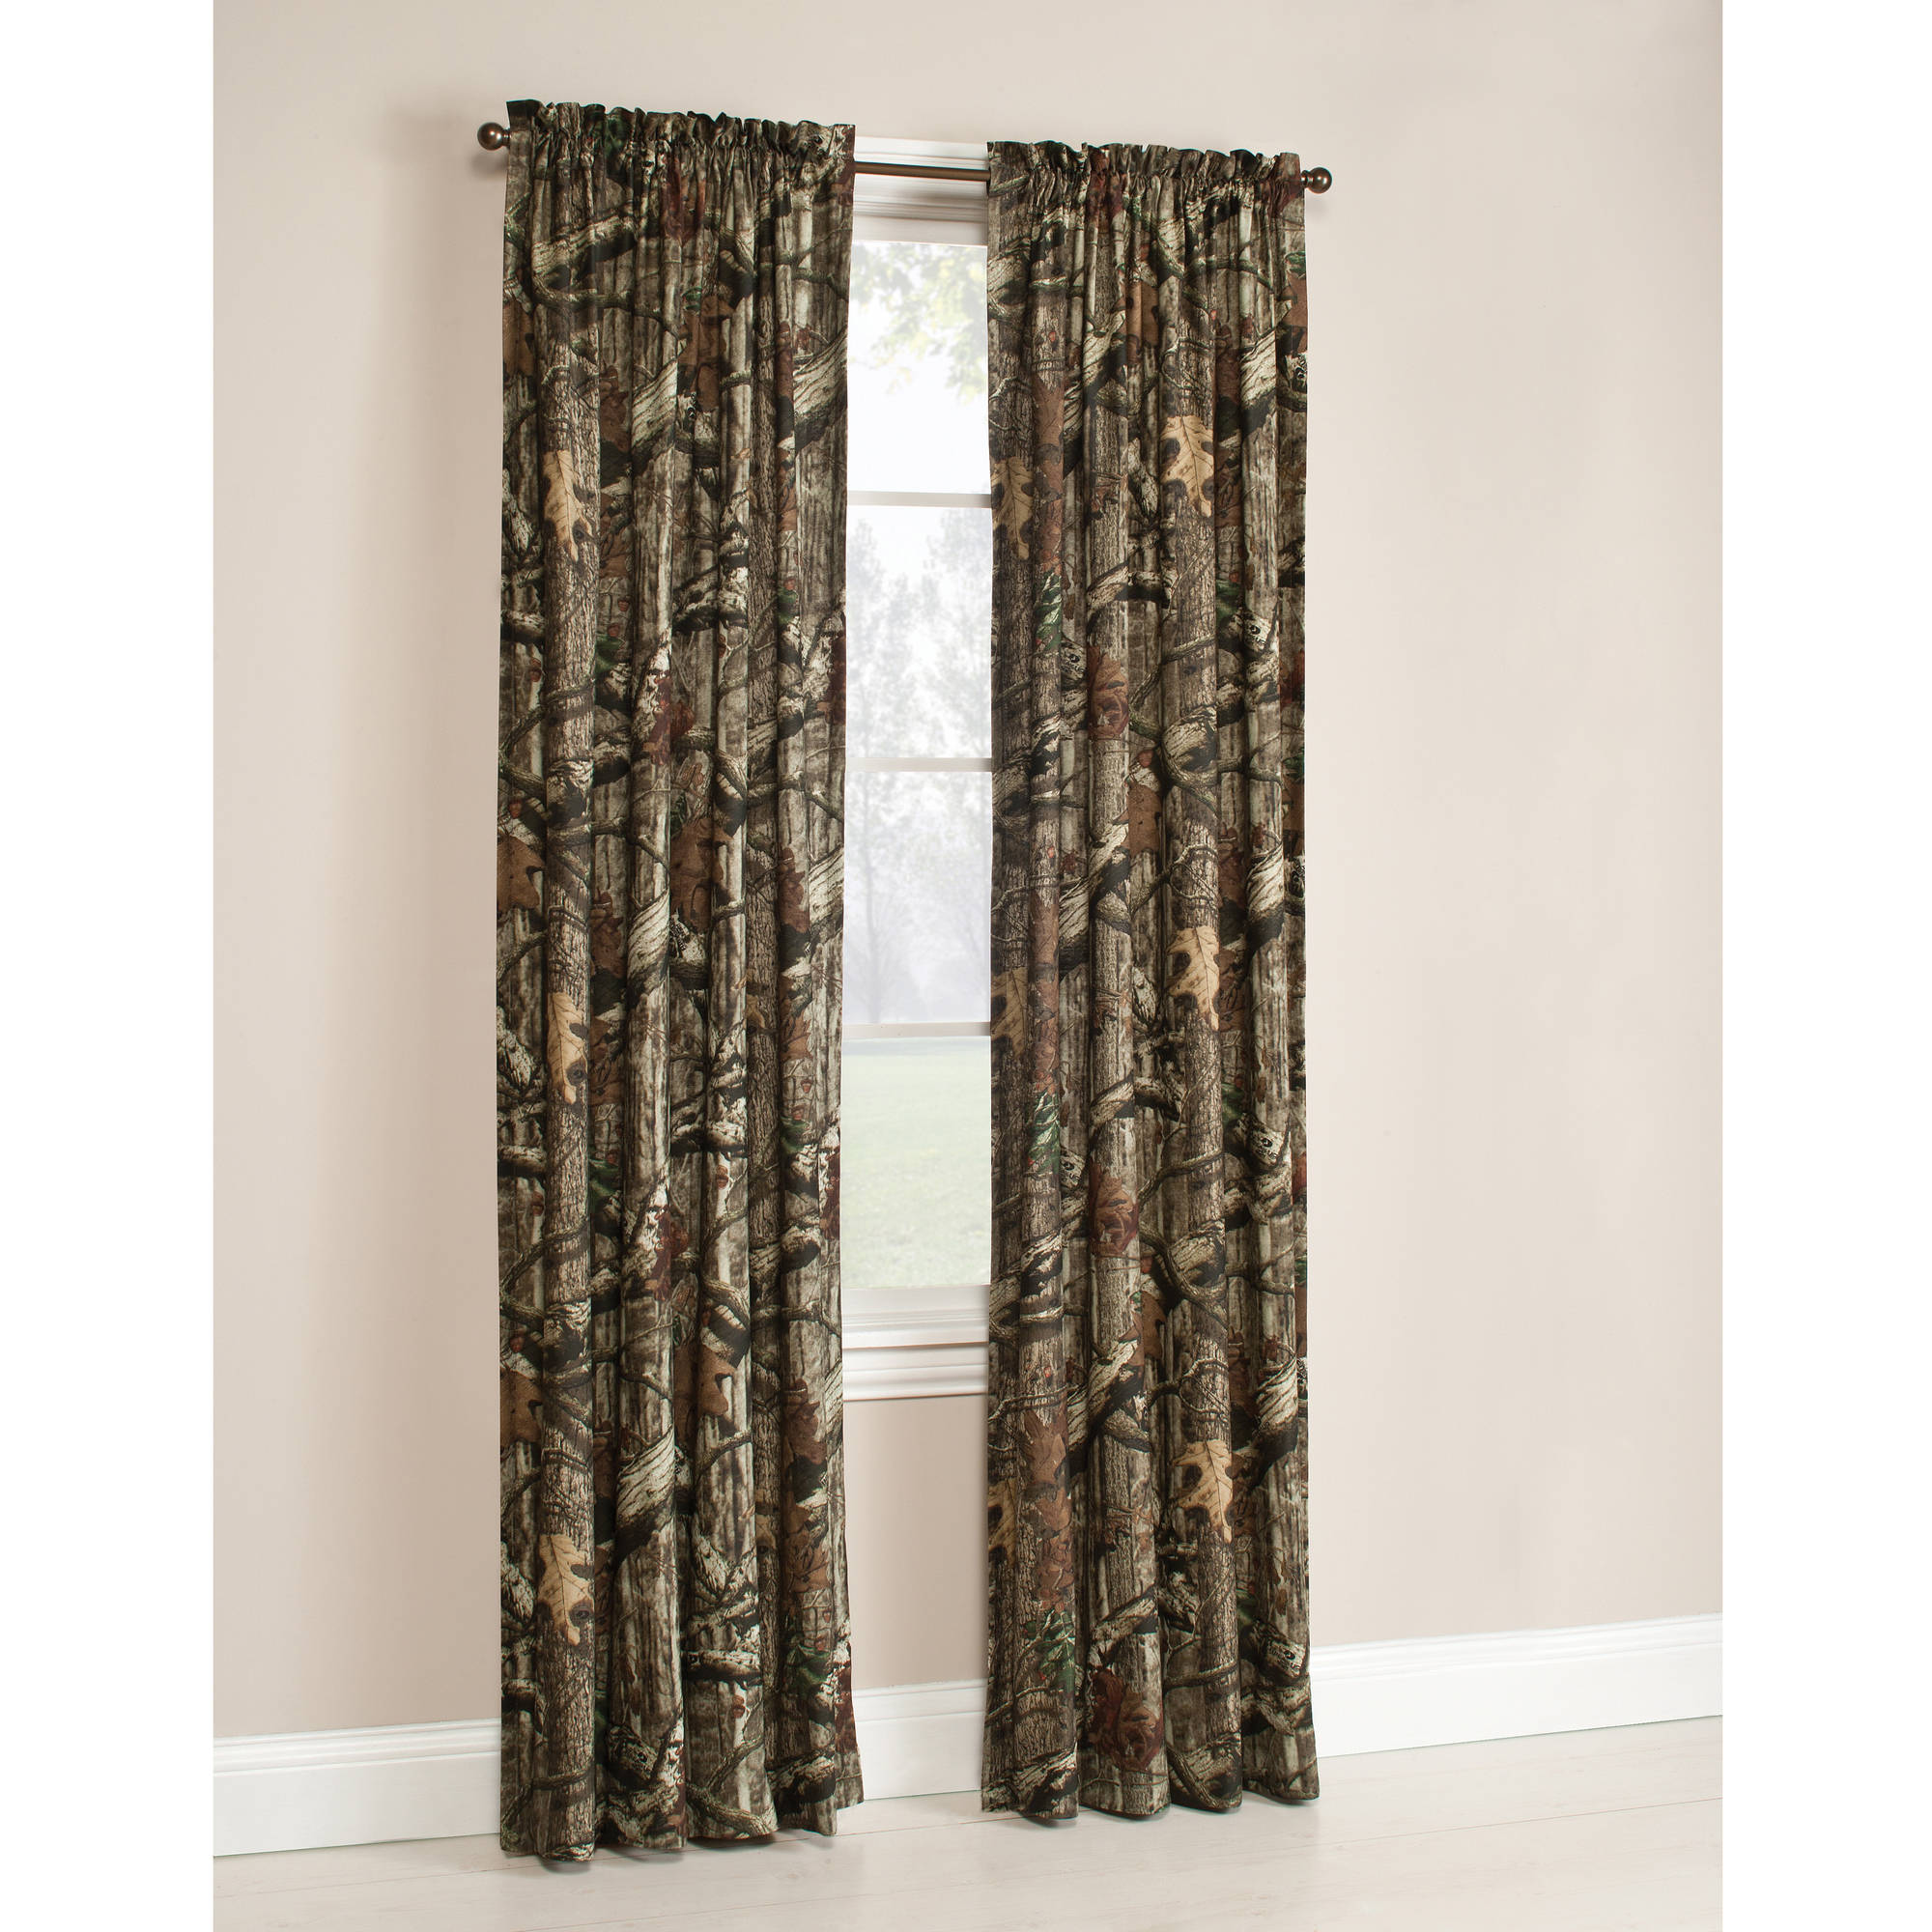 Mossy Oak Break-Up Infinity Camouflage Print Window Curtain Panels by